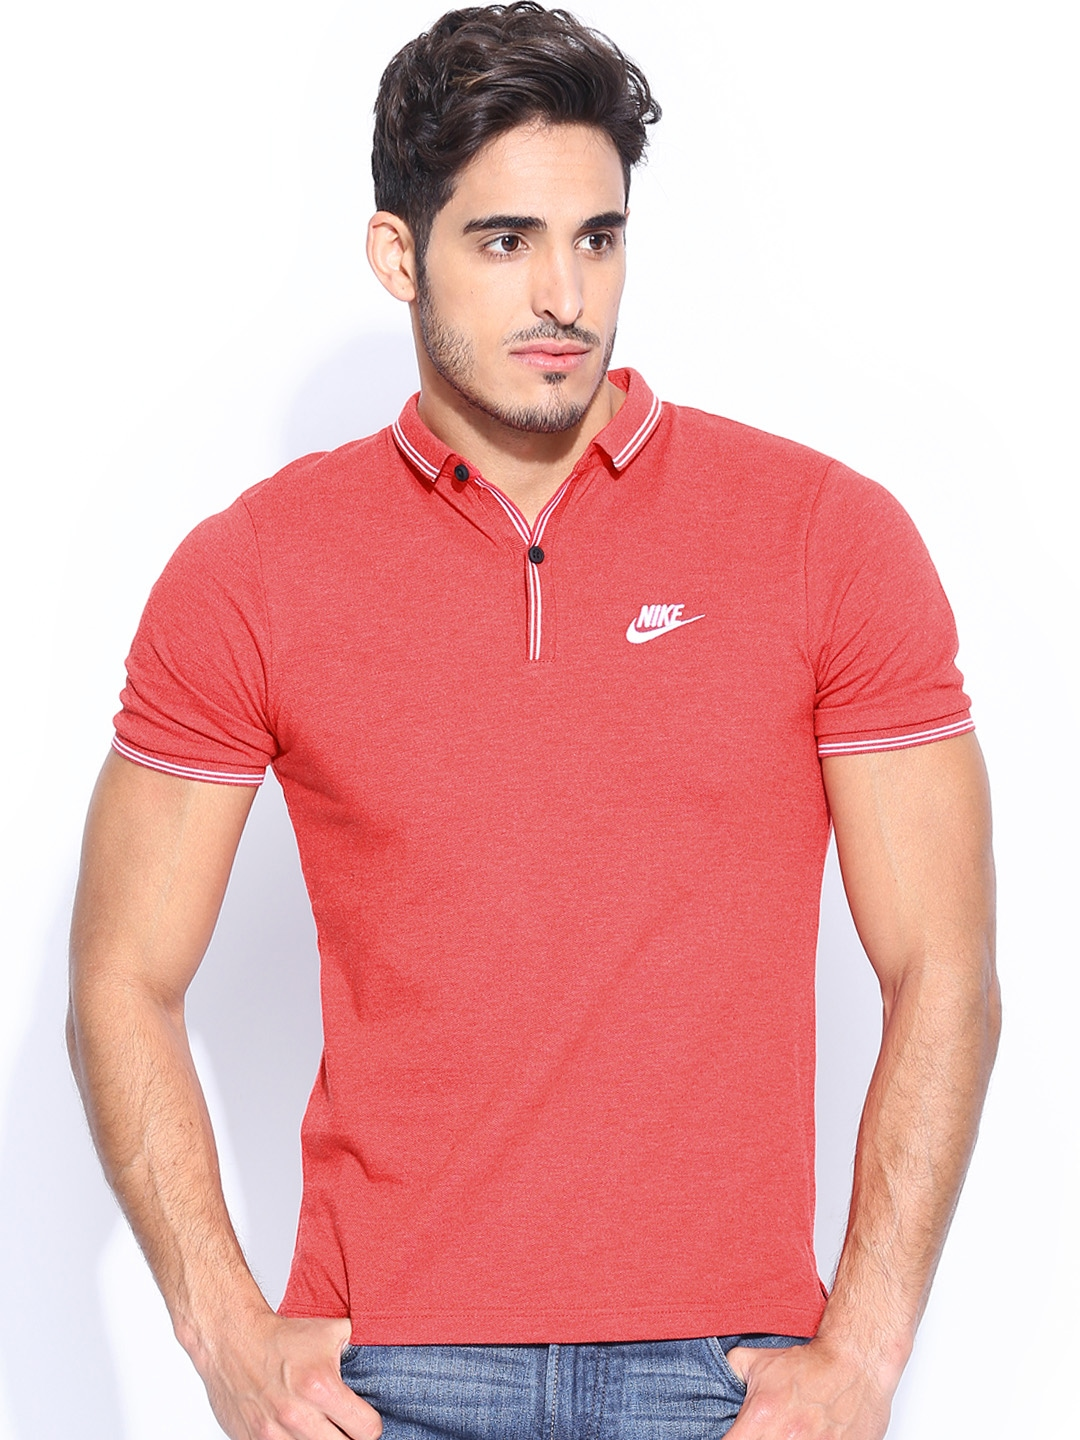 Myntra nike men coral red polo t shirt 655567 buy myntra for Coral shirts for guys